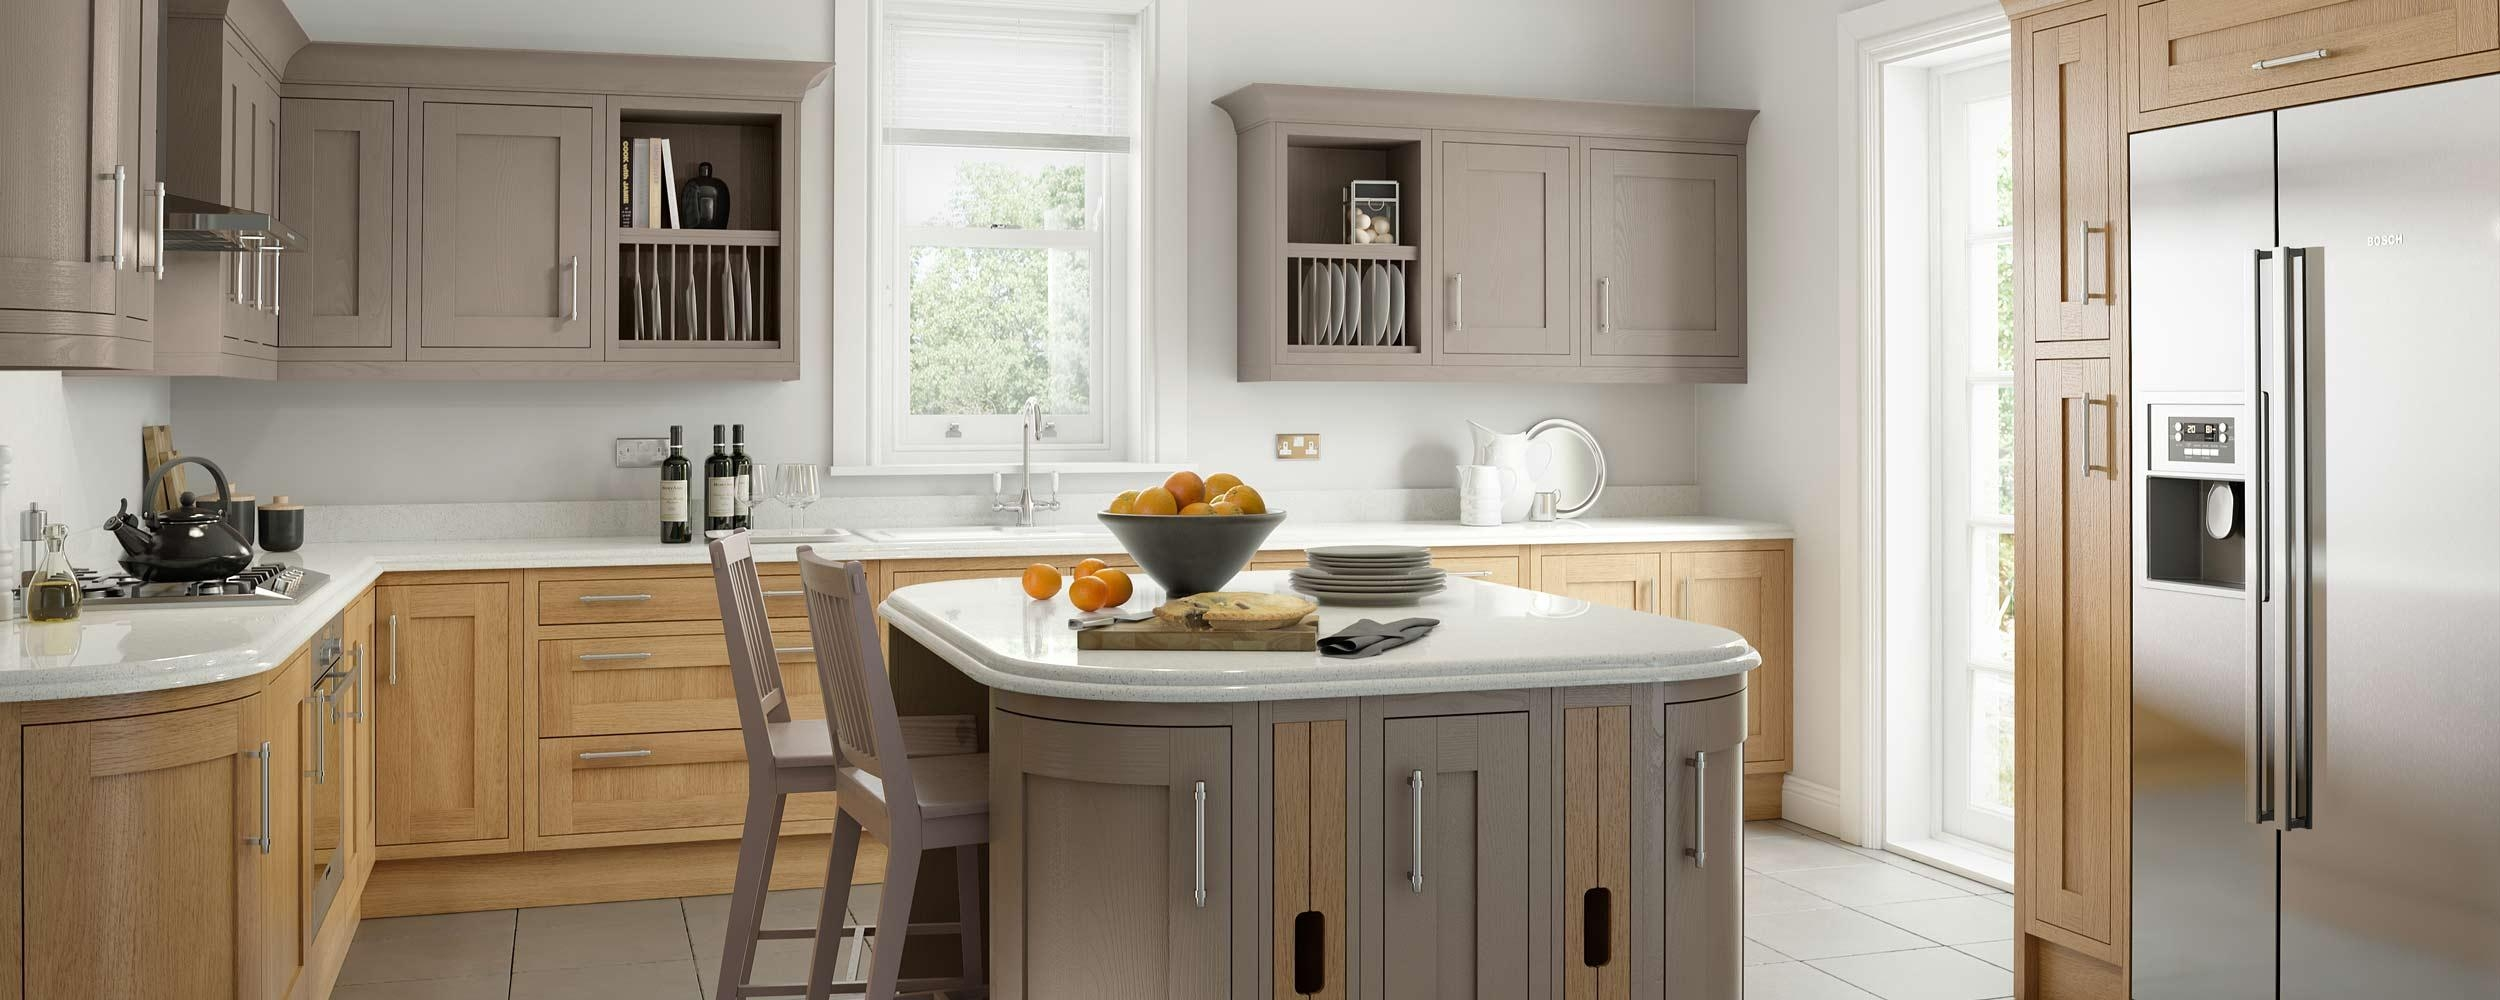 english rose kitchen design glasgow